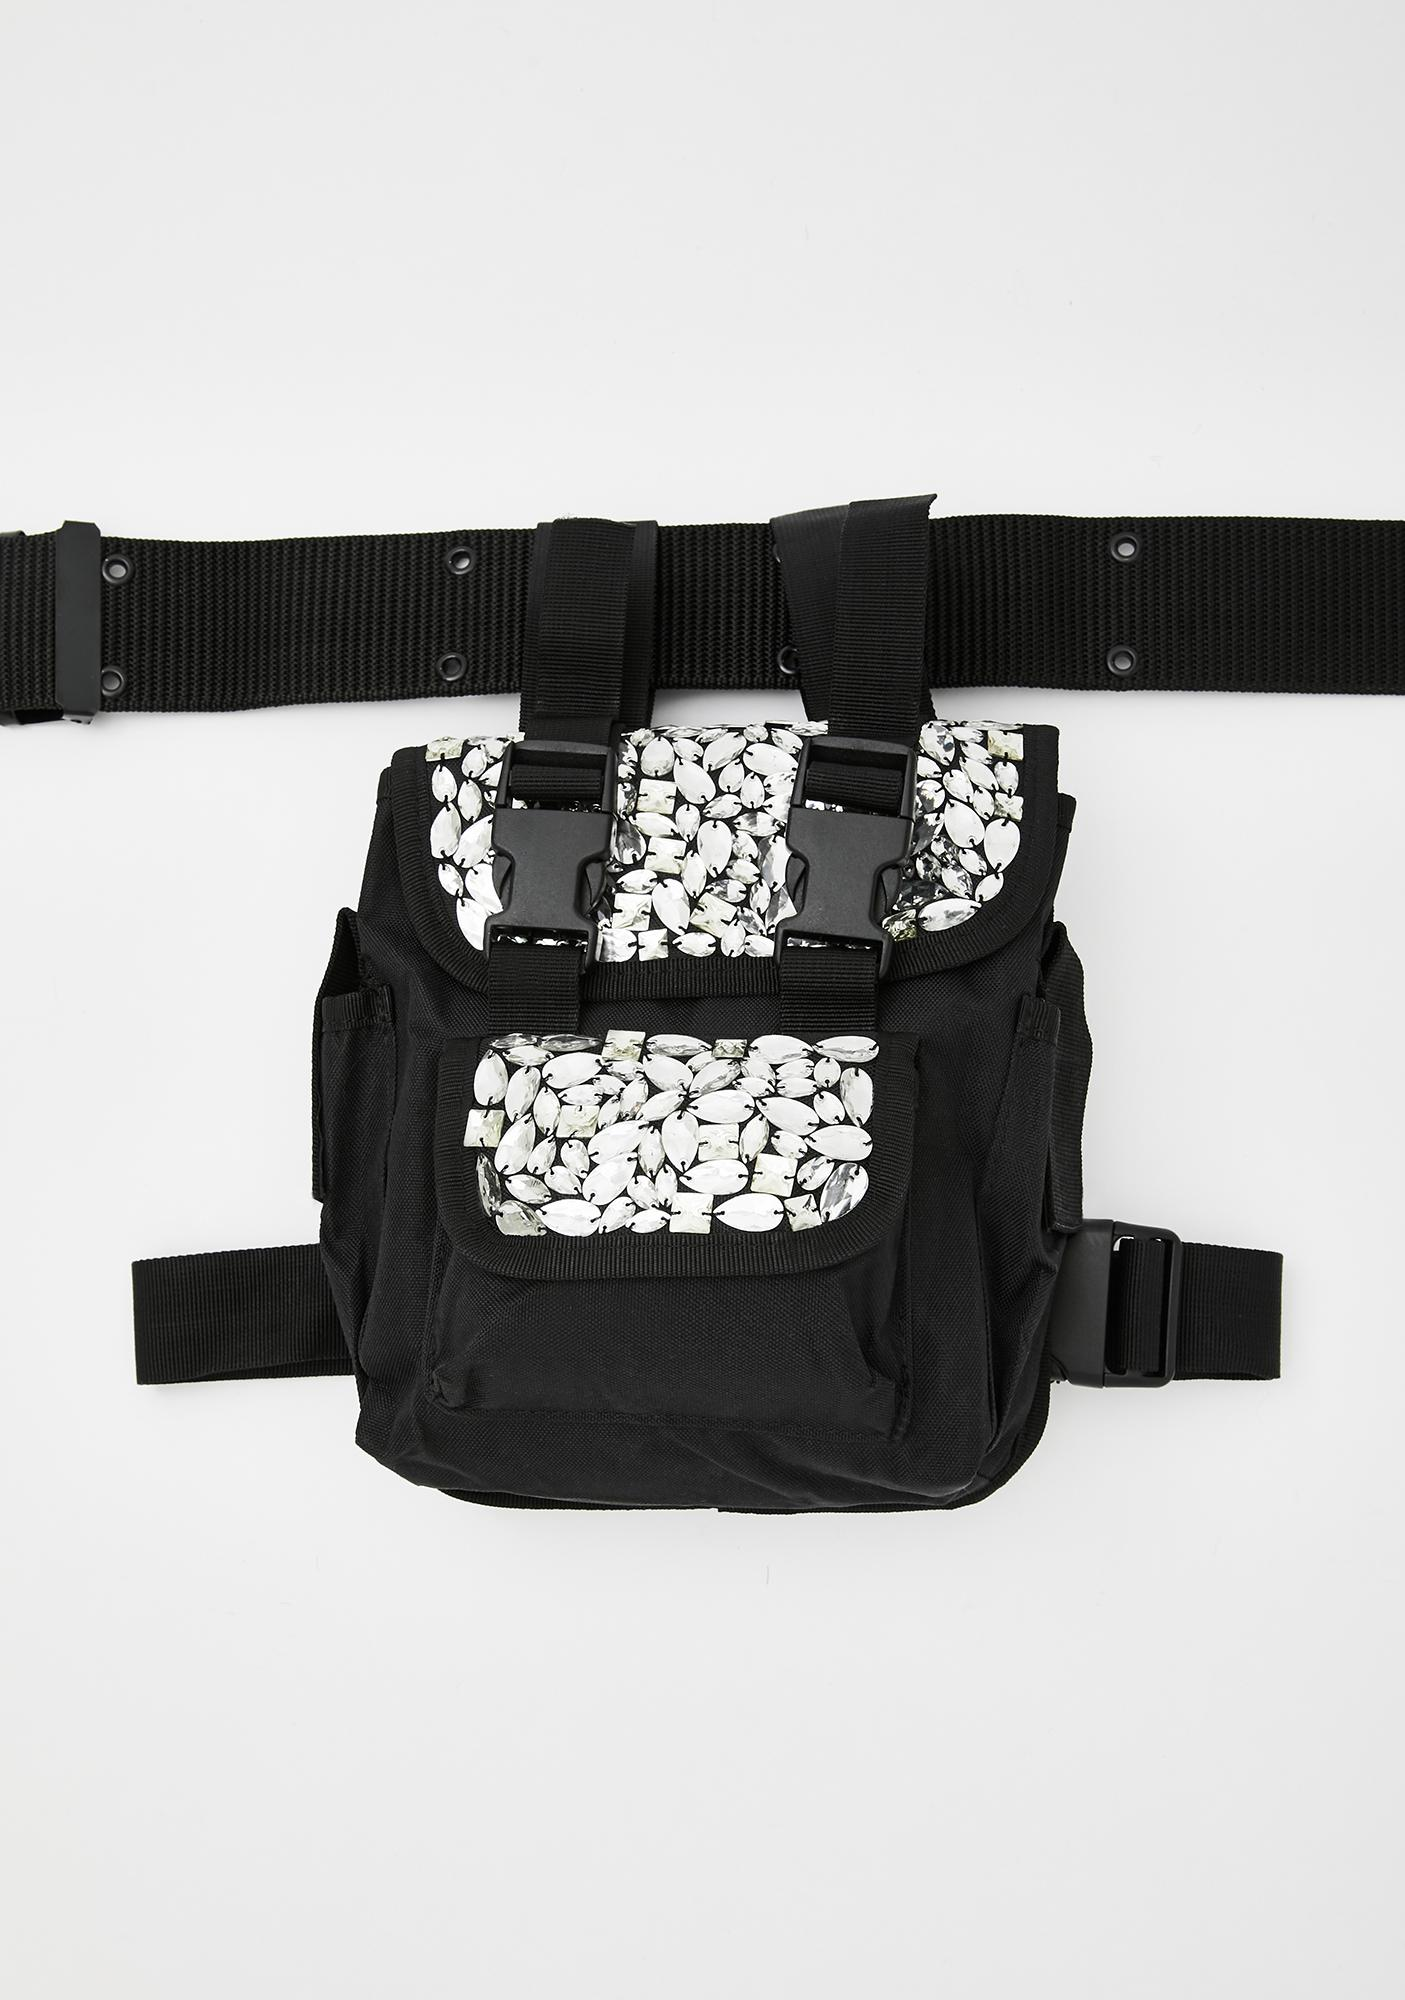 SHRINE Jeweled Bum Bag & Belt